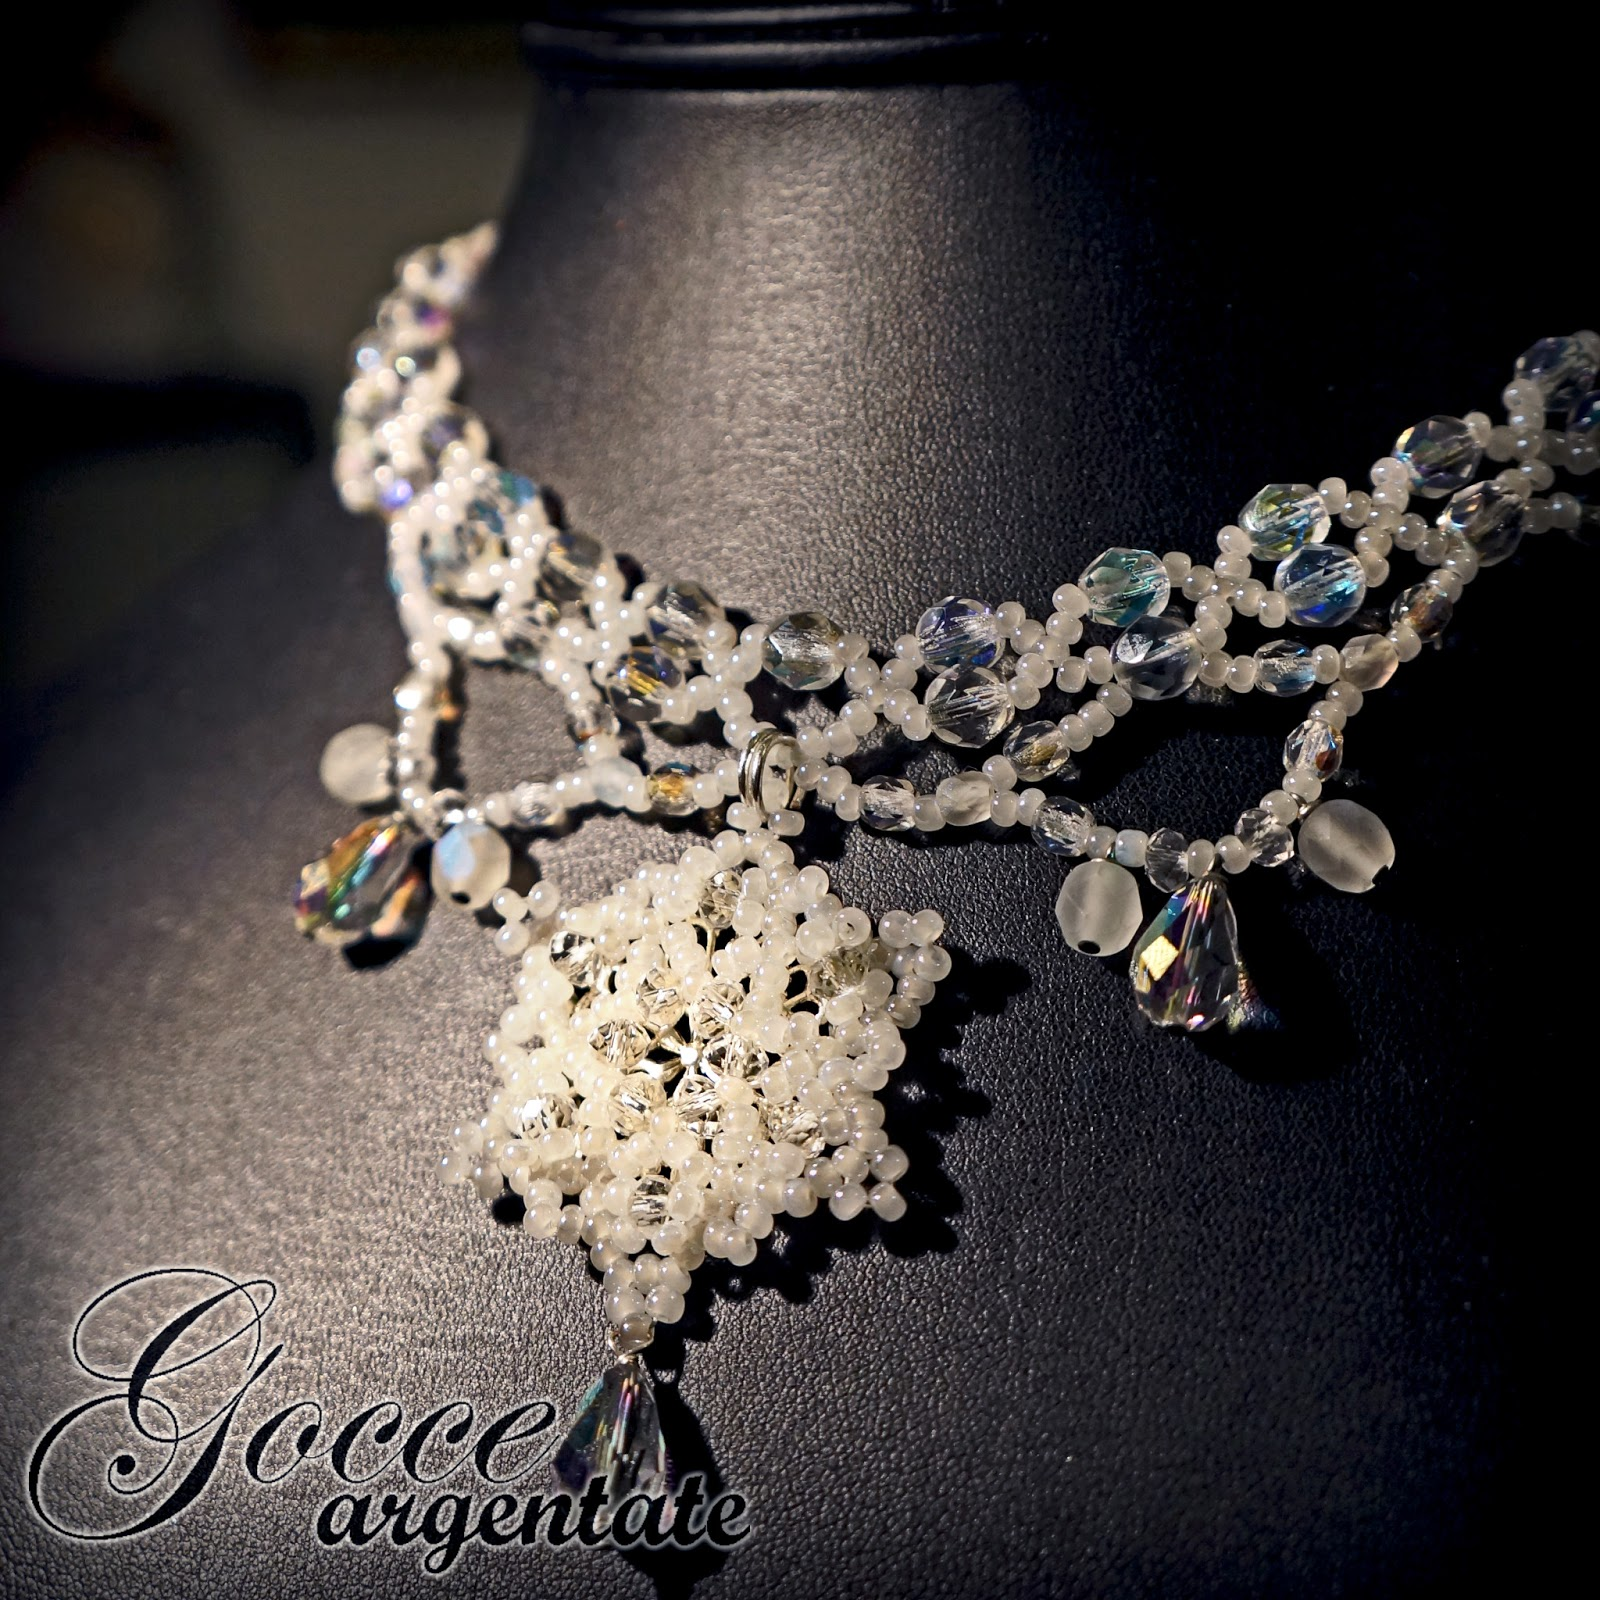 Snow Queen Diamontrigue Jewelry: Gocce Argentate: Snow Queen Necklace